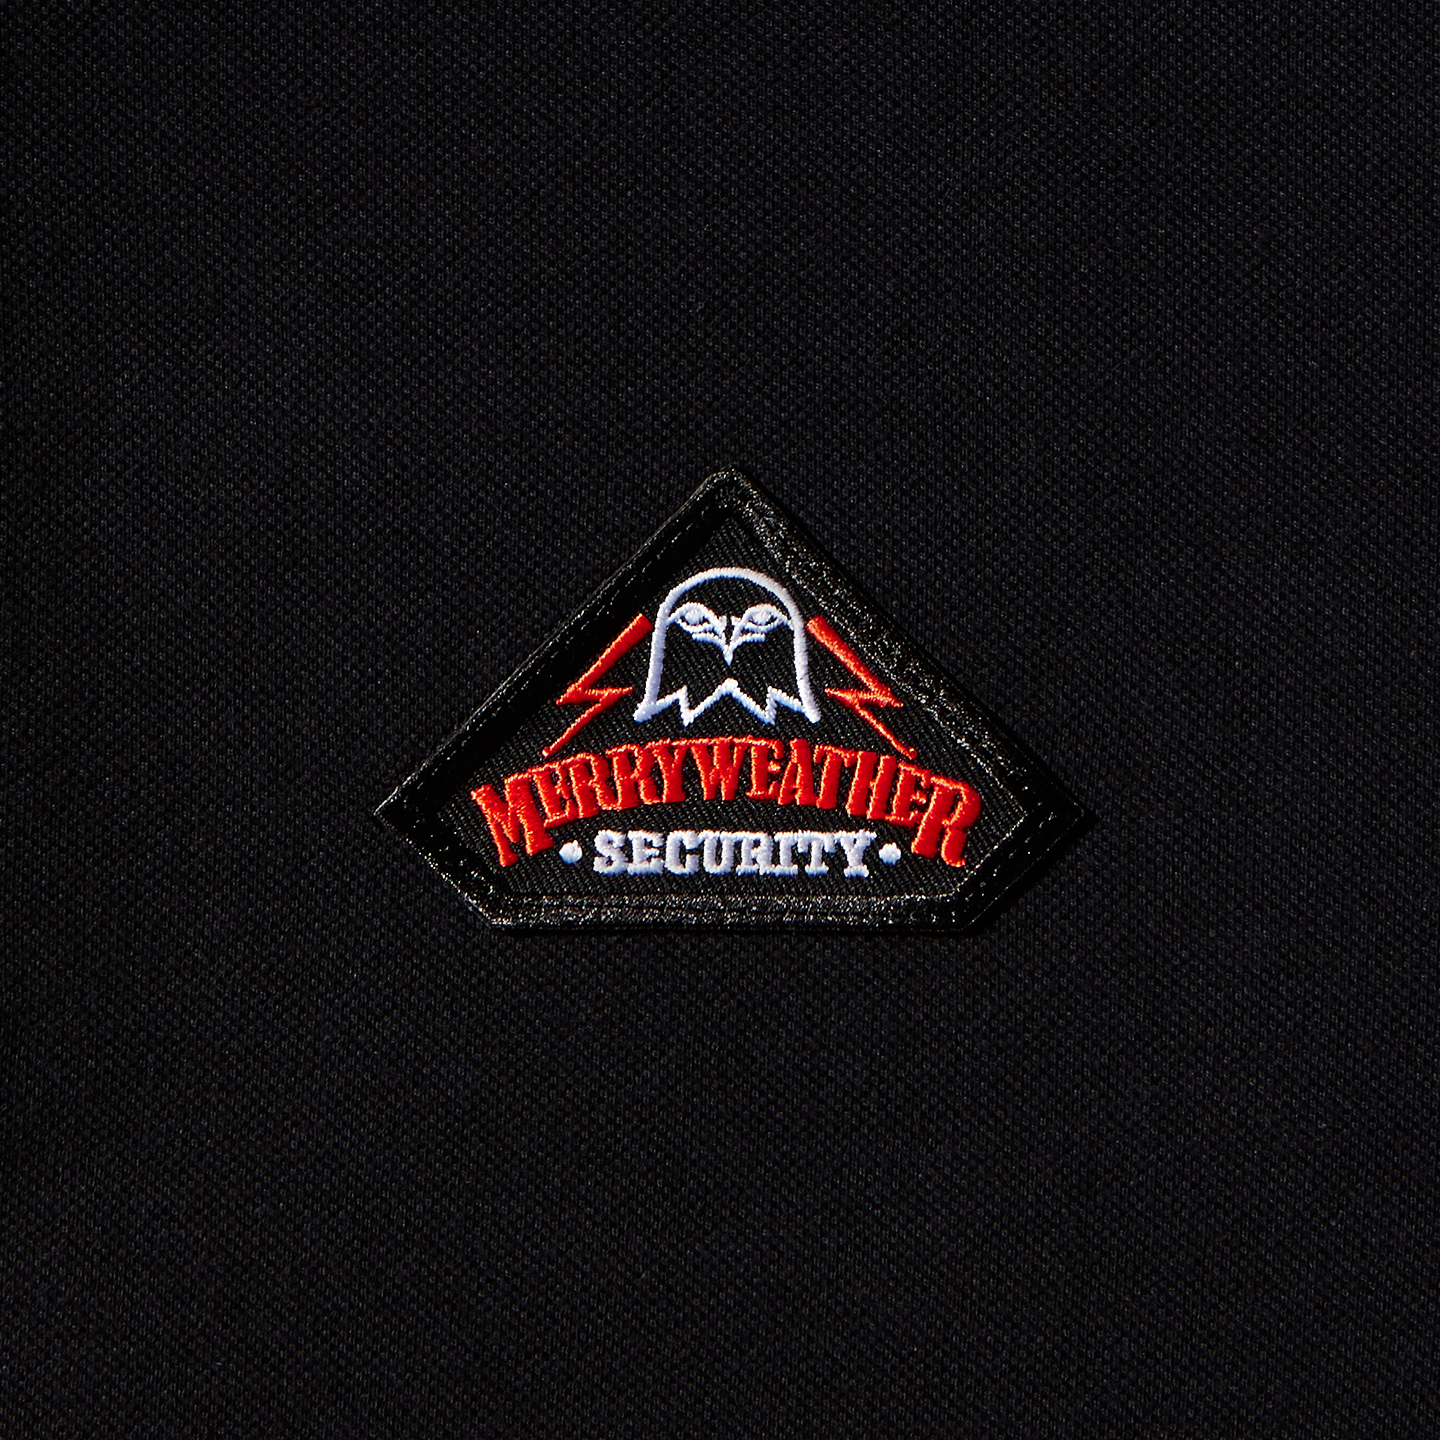 Merryweather Security Polo